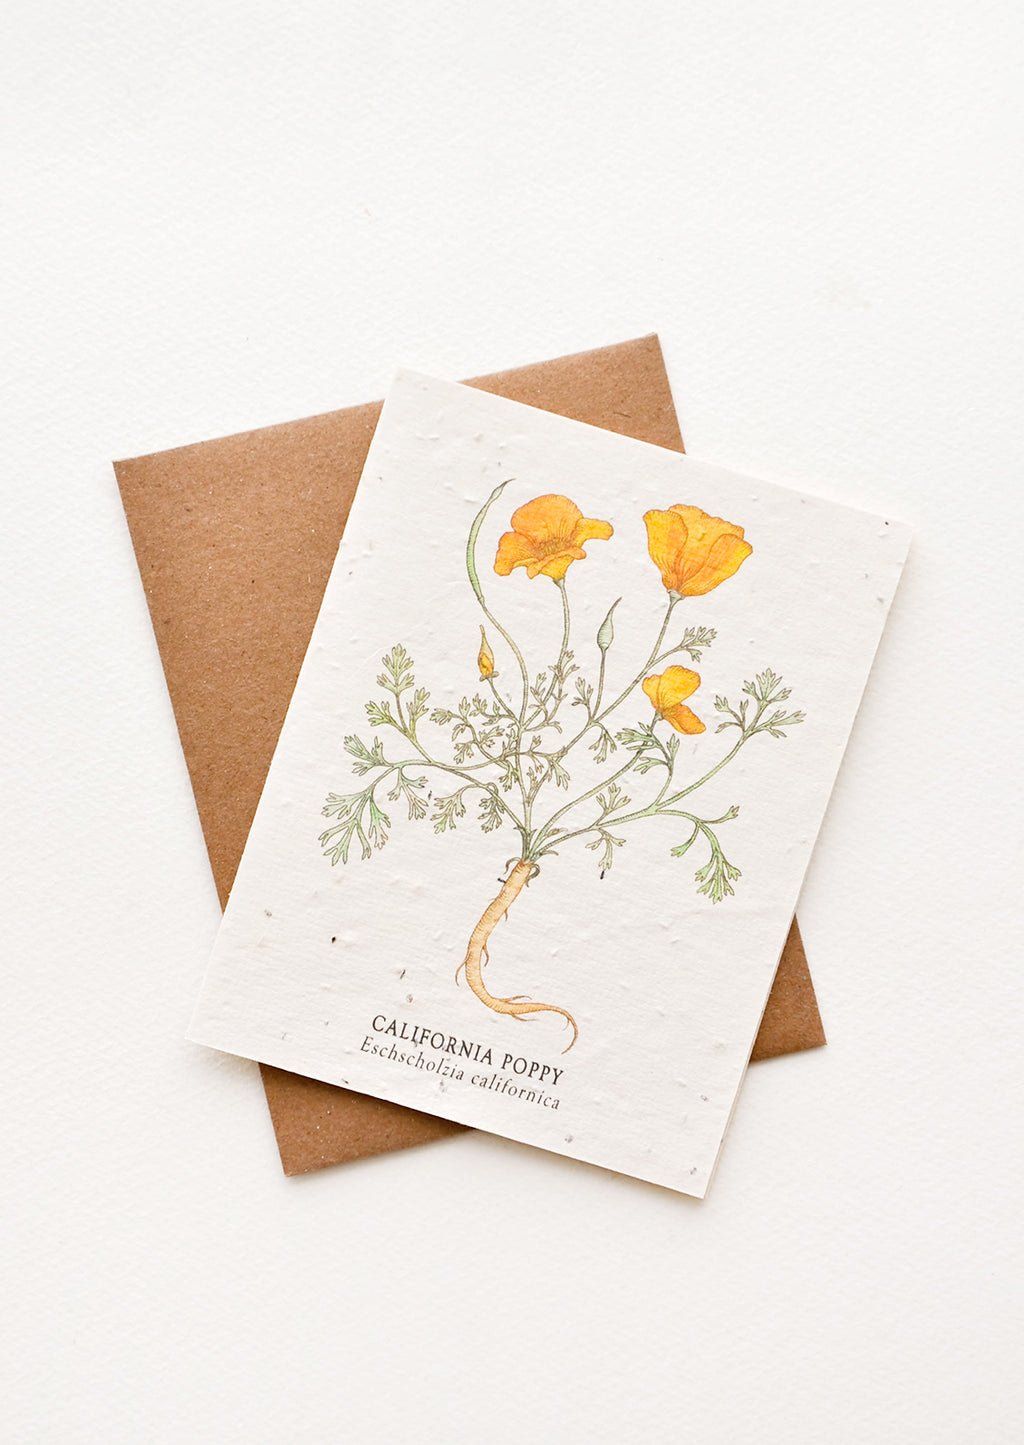 California Poppy: Notecard with drawing of a poppy flower and brown envelope.